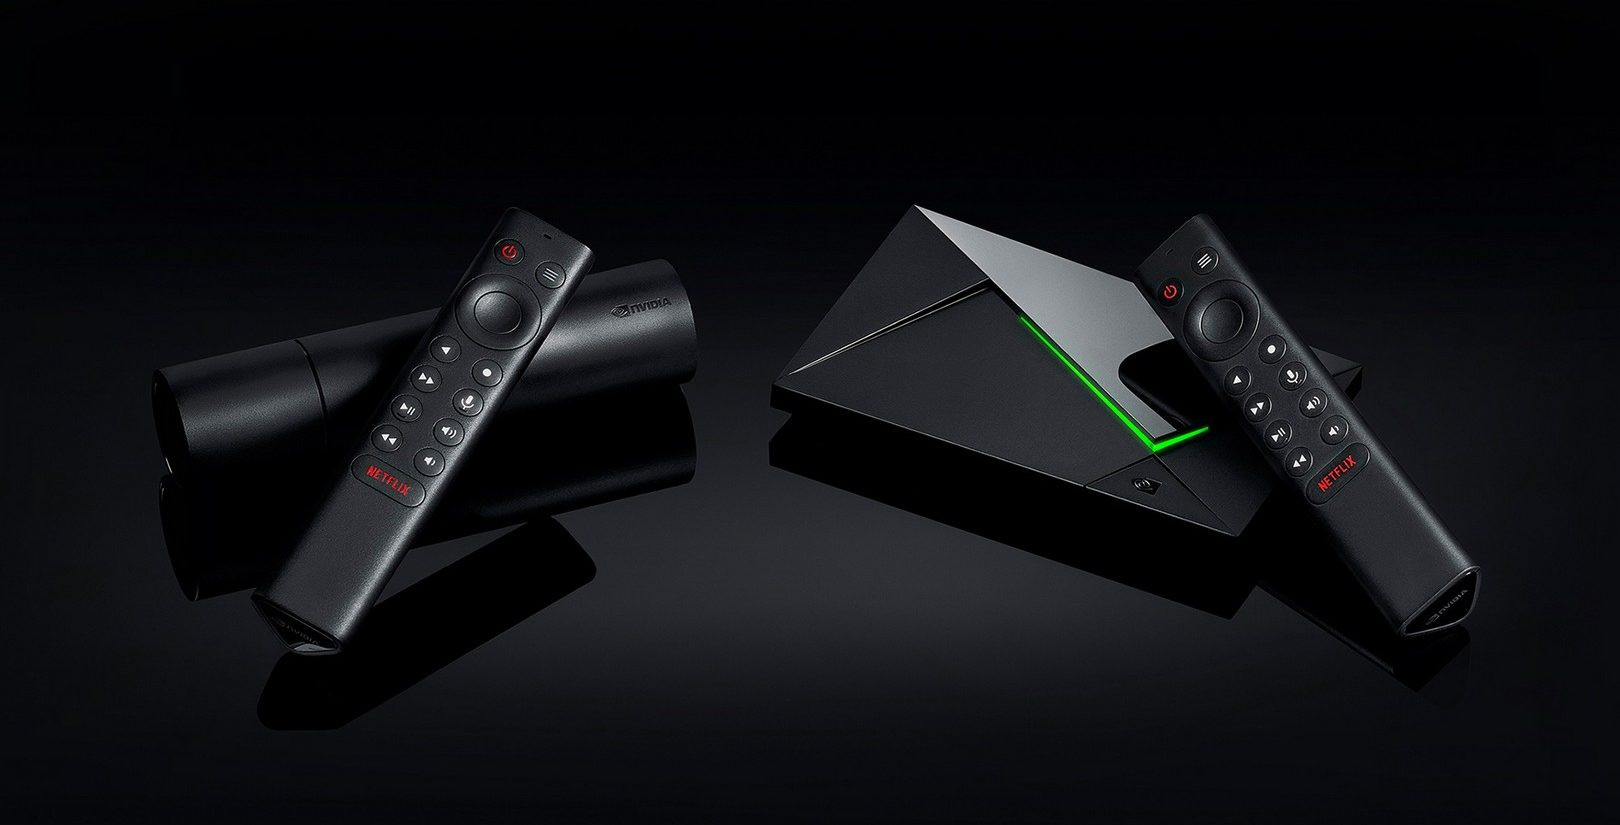 New Nvidia Shield TVs Boast Tegra X1+ Processor